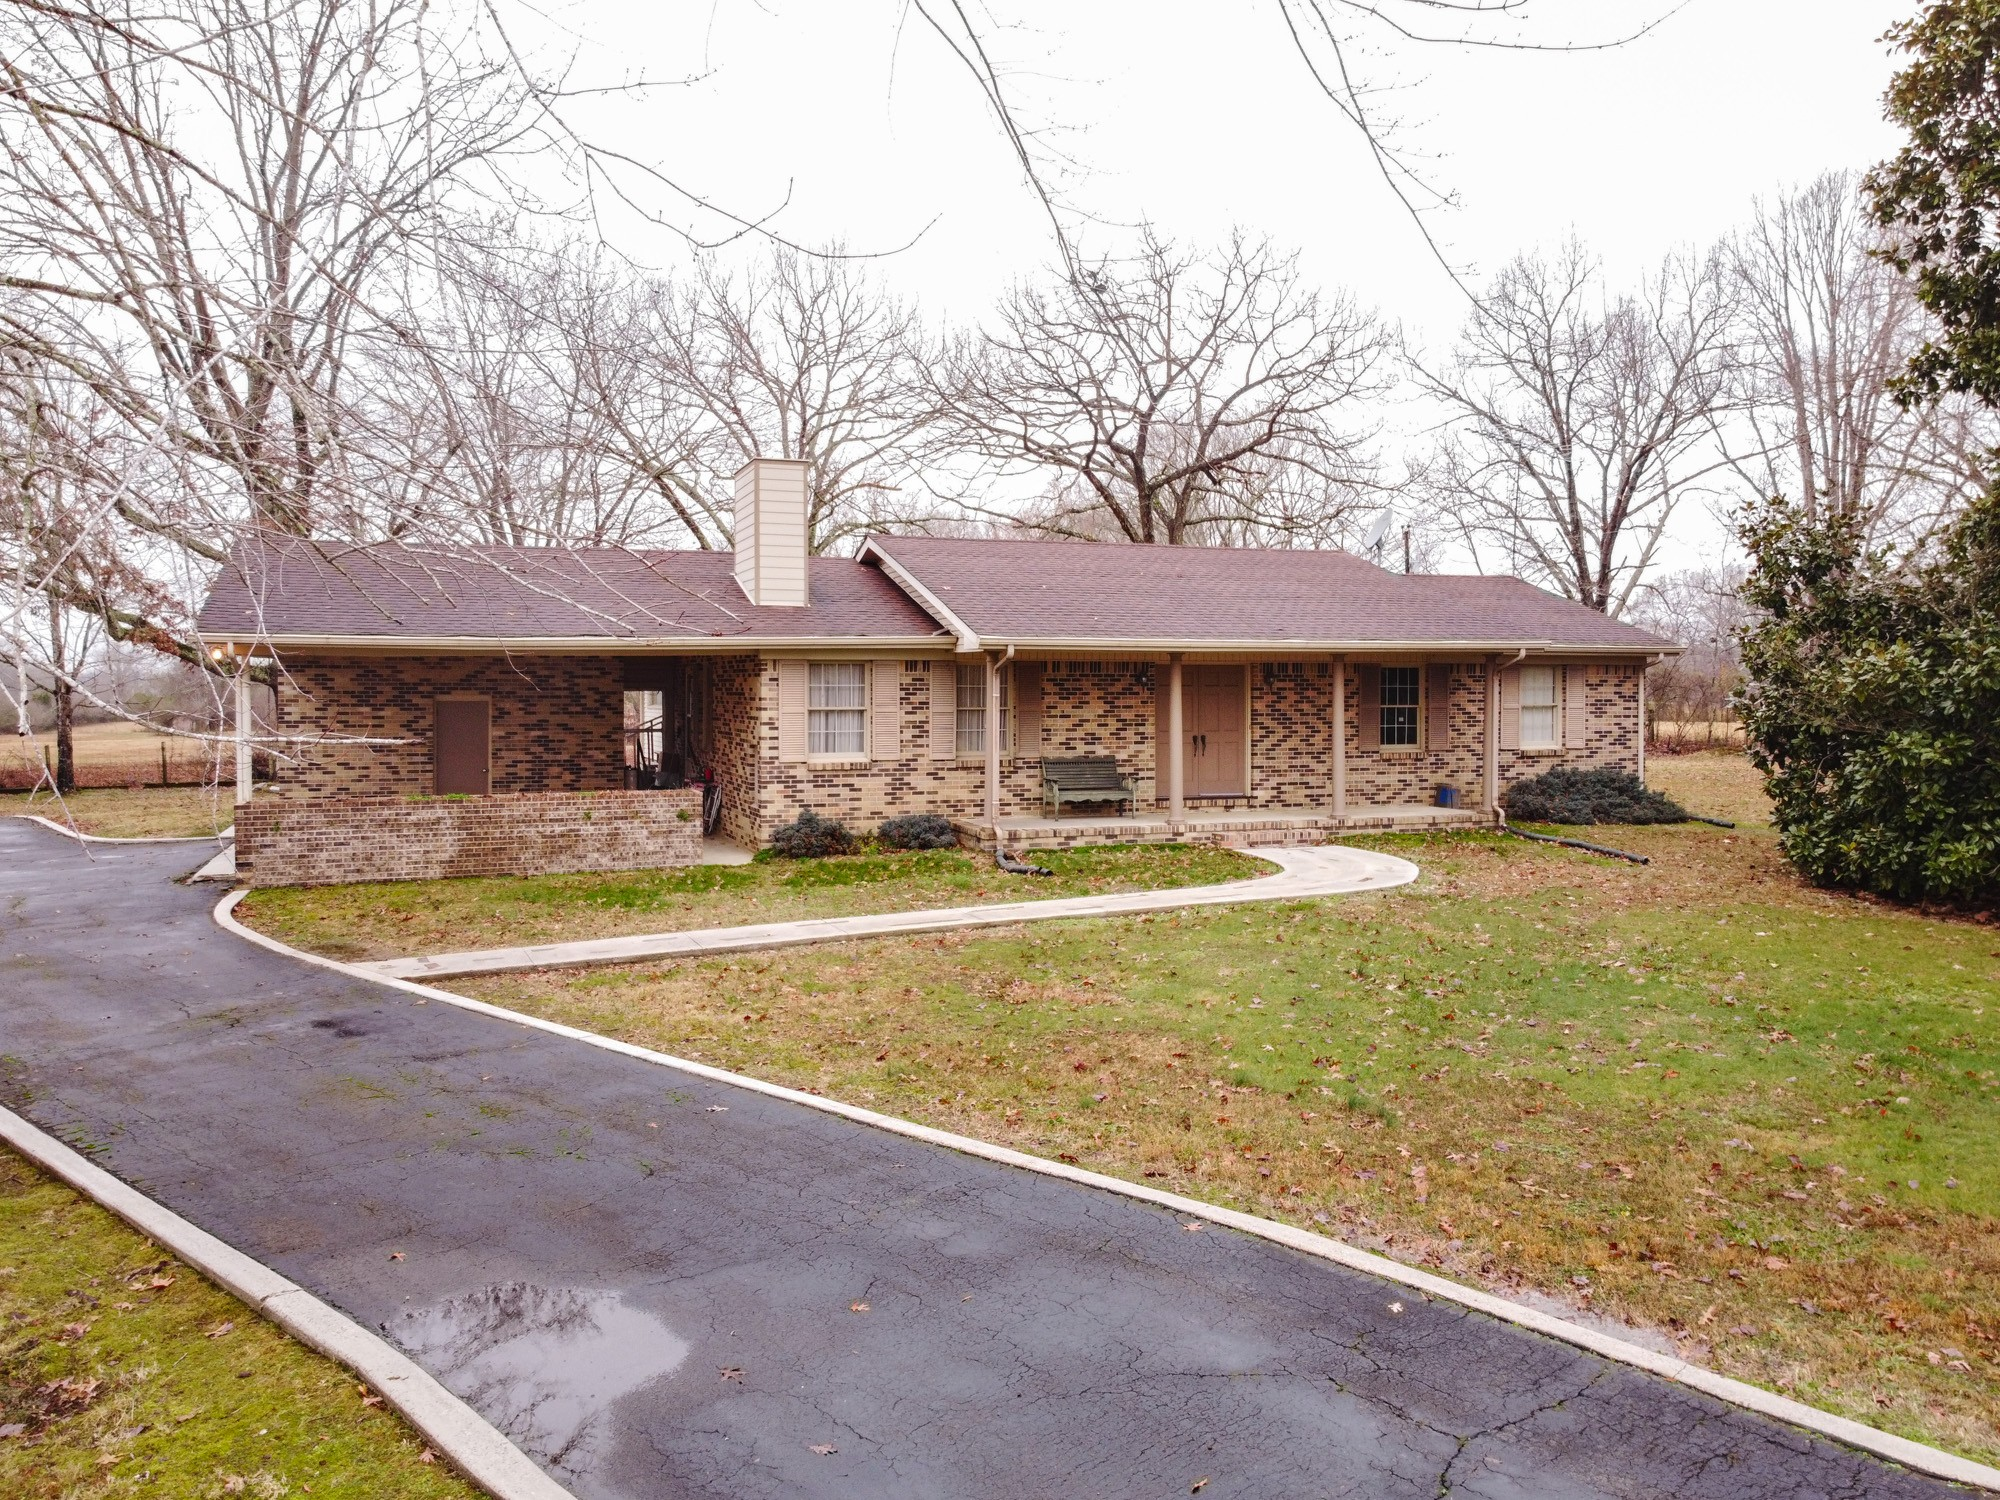 754 Kourtwood Ln Property Photo - Tullahoma, TN real estate listing